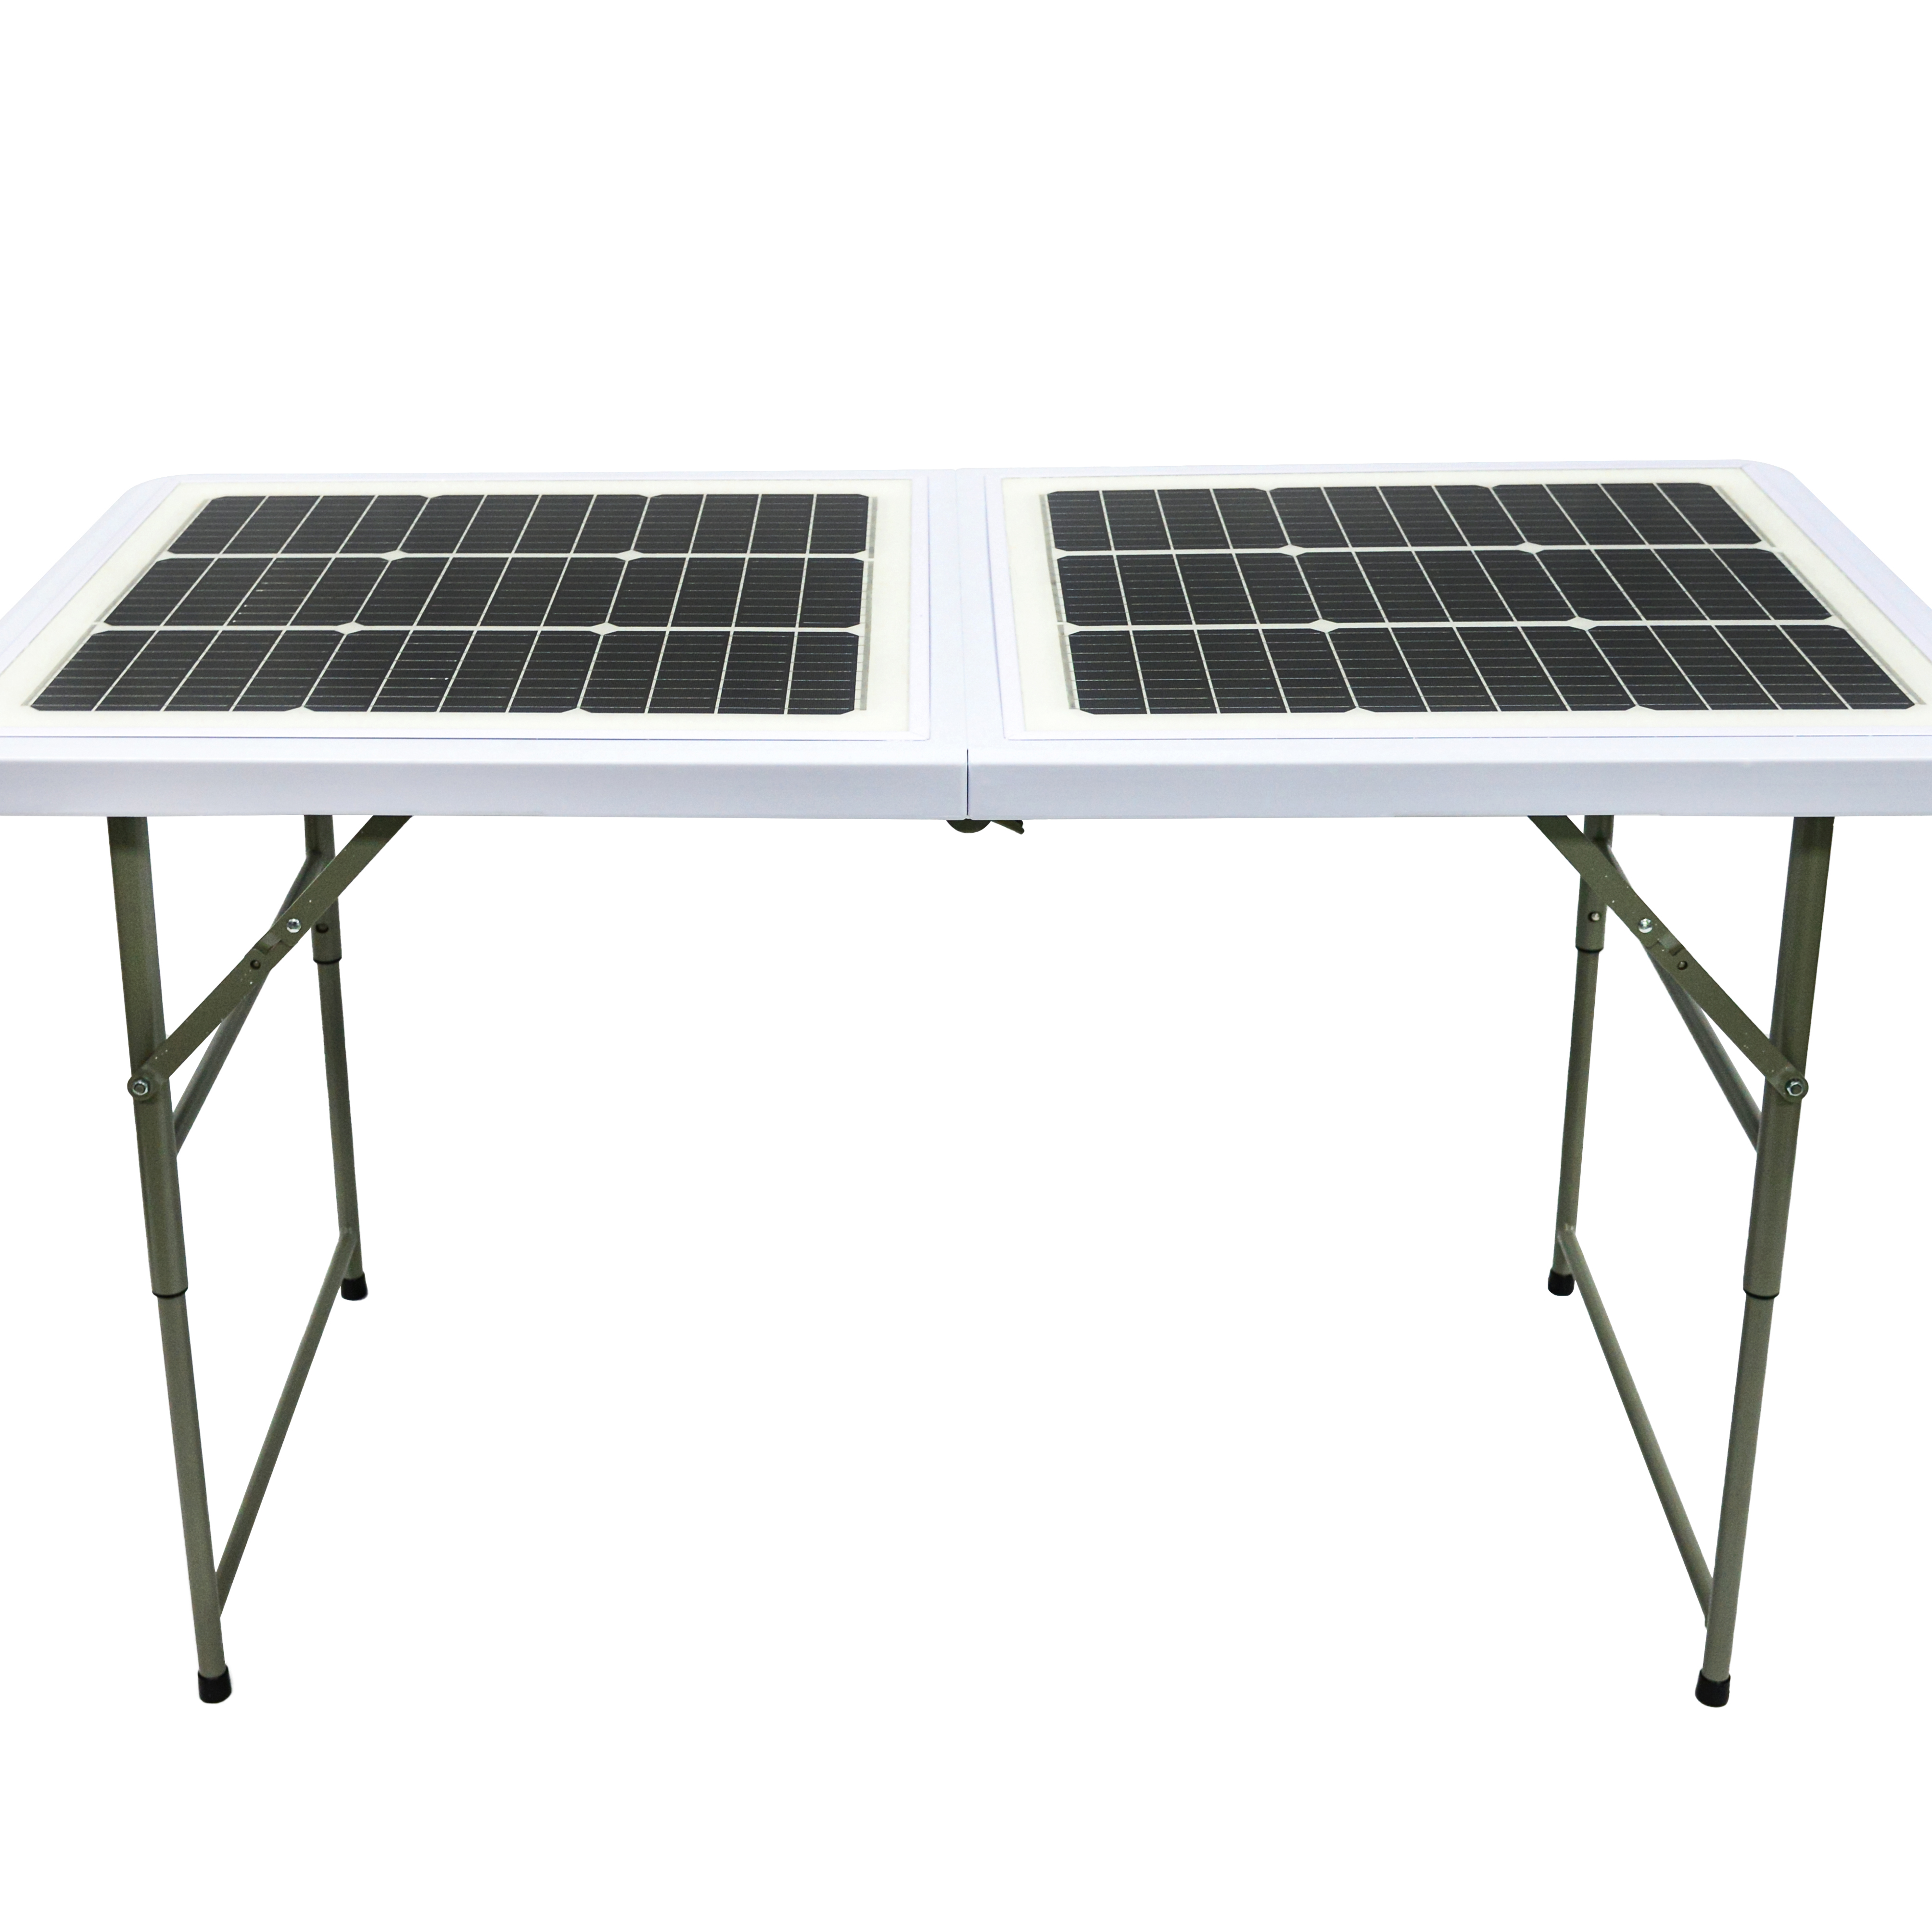 The Application of Folding Solar Table